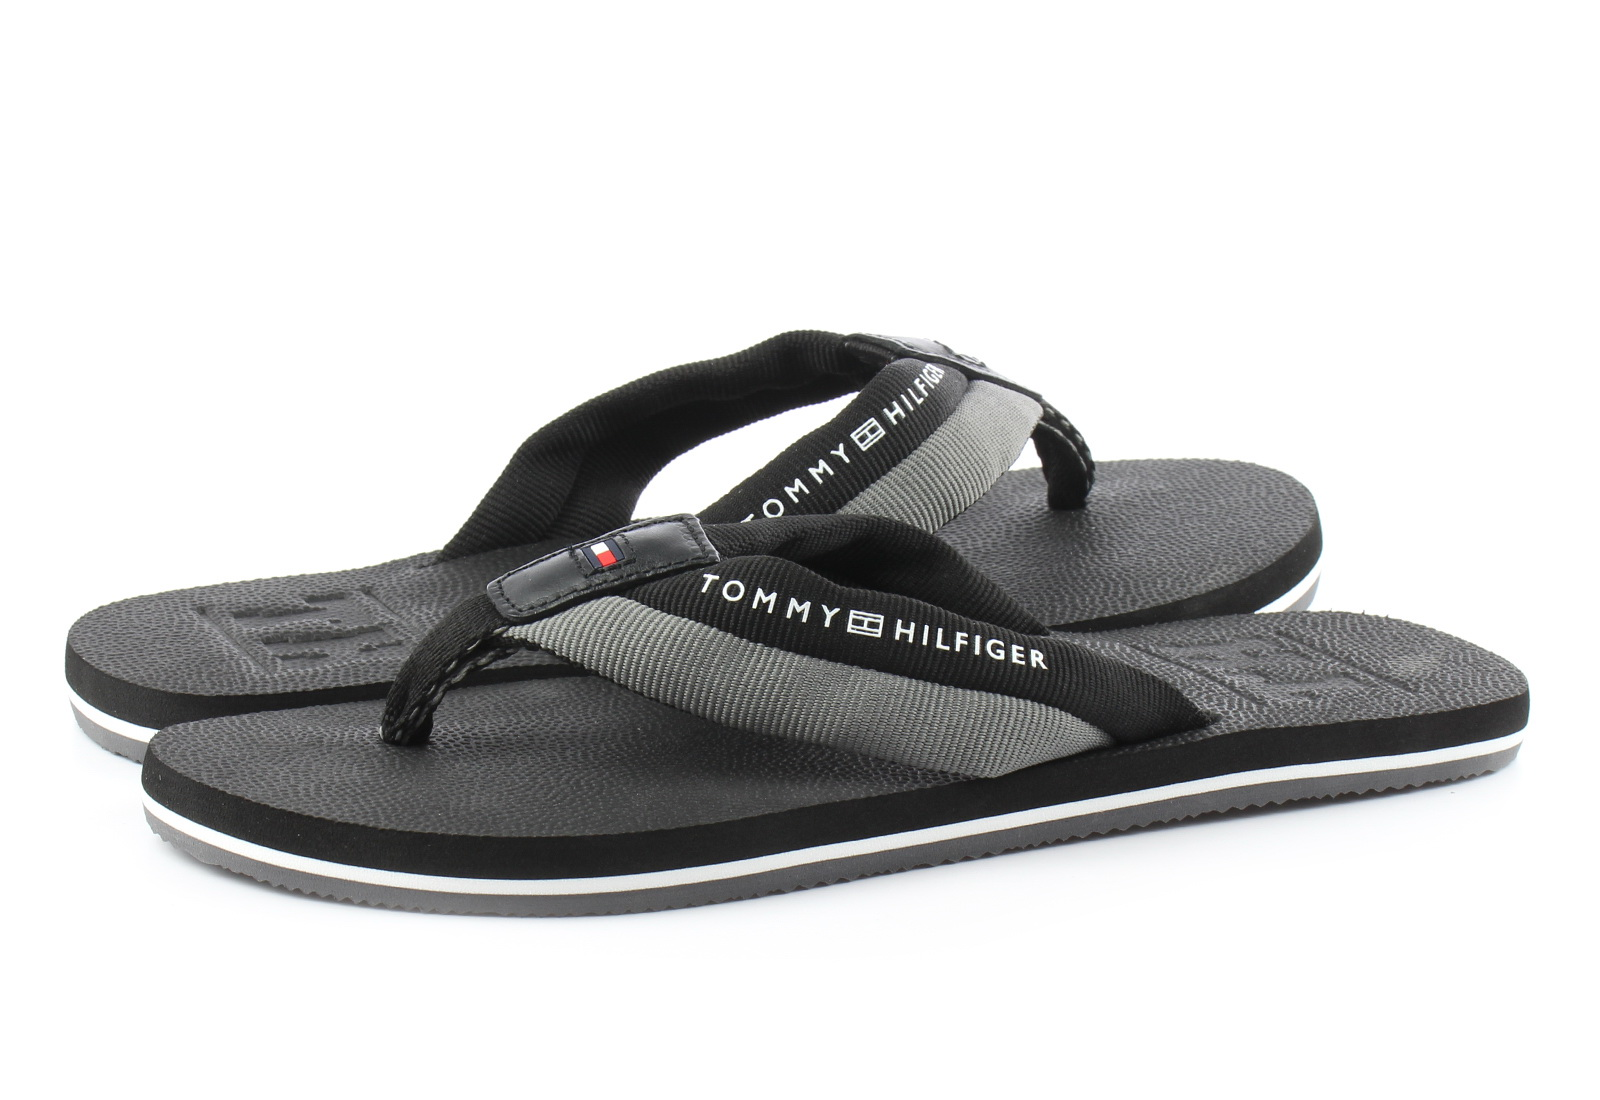 Tommy Hilfiger Papucs Embossed Th Beach Sandal Black